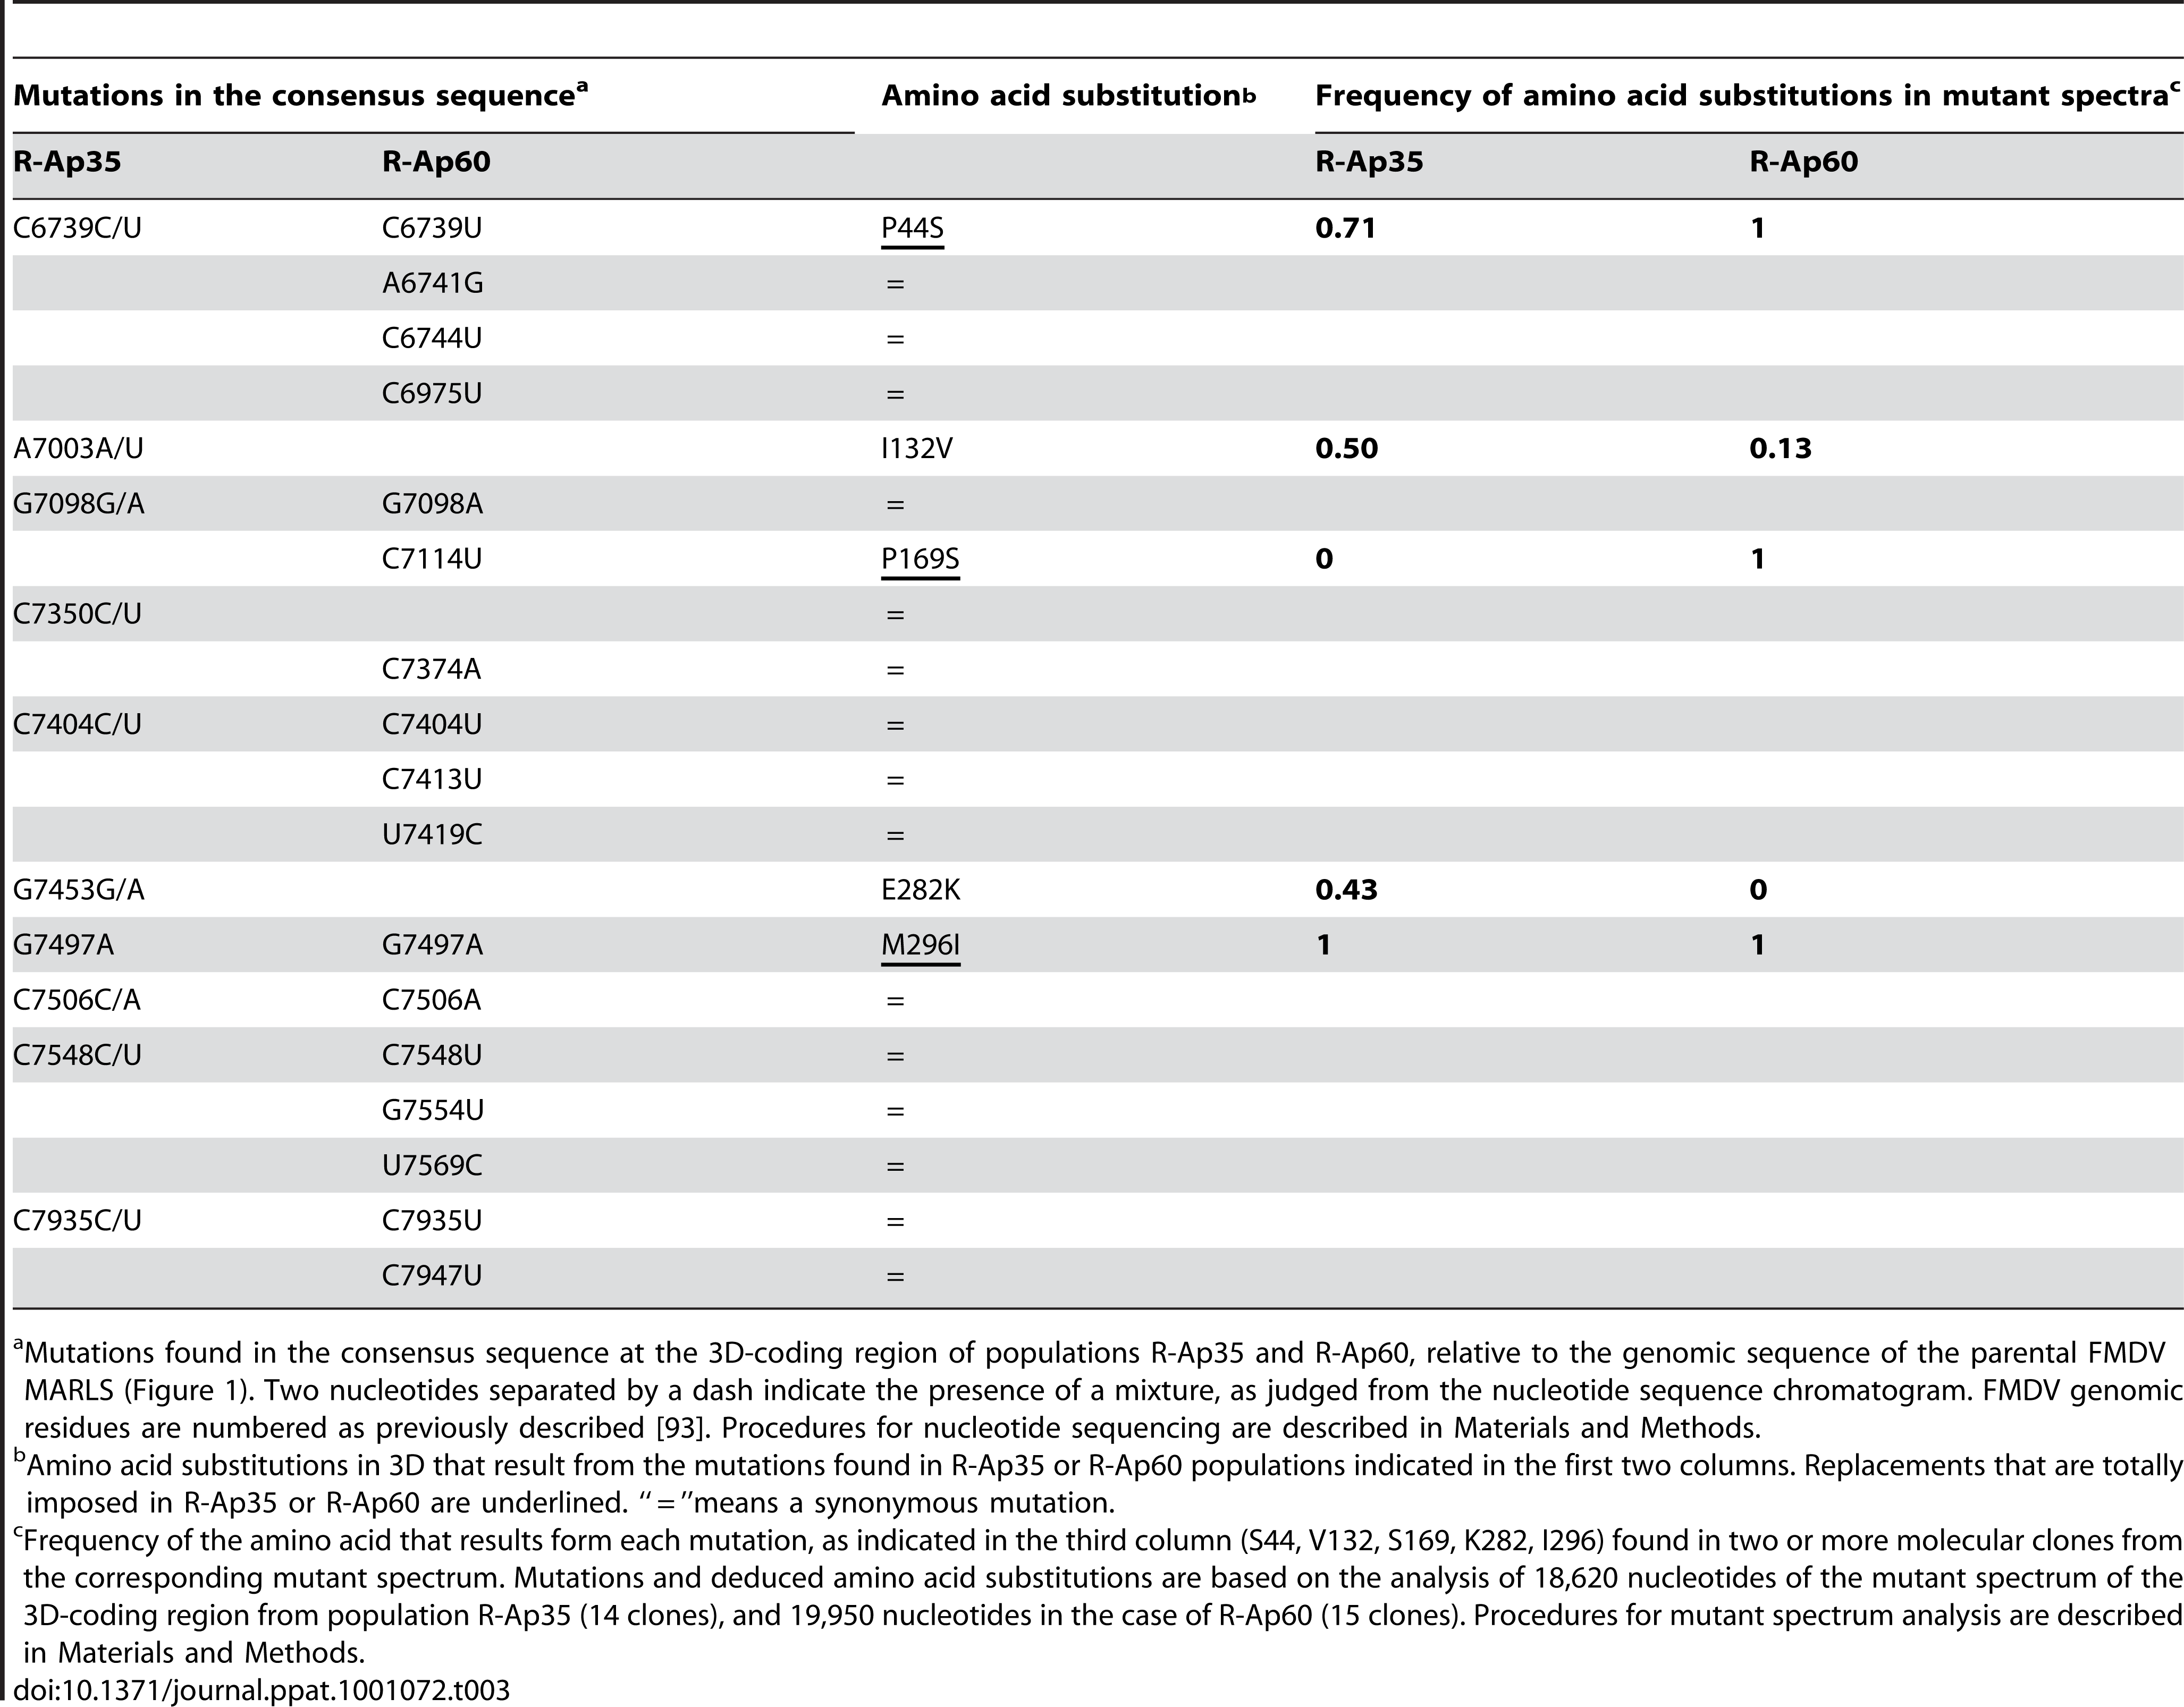 Consensus sequence and mutant spectrum composition of the 3D-coding region of FMDV R-Ap35 and R-Ap60, and deduced amino acid substitutions.